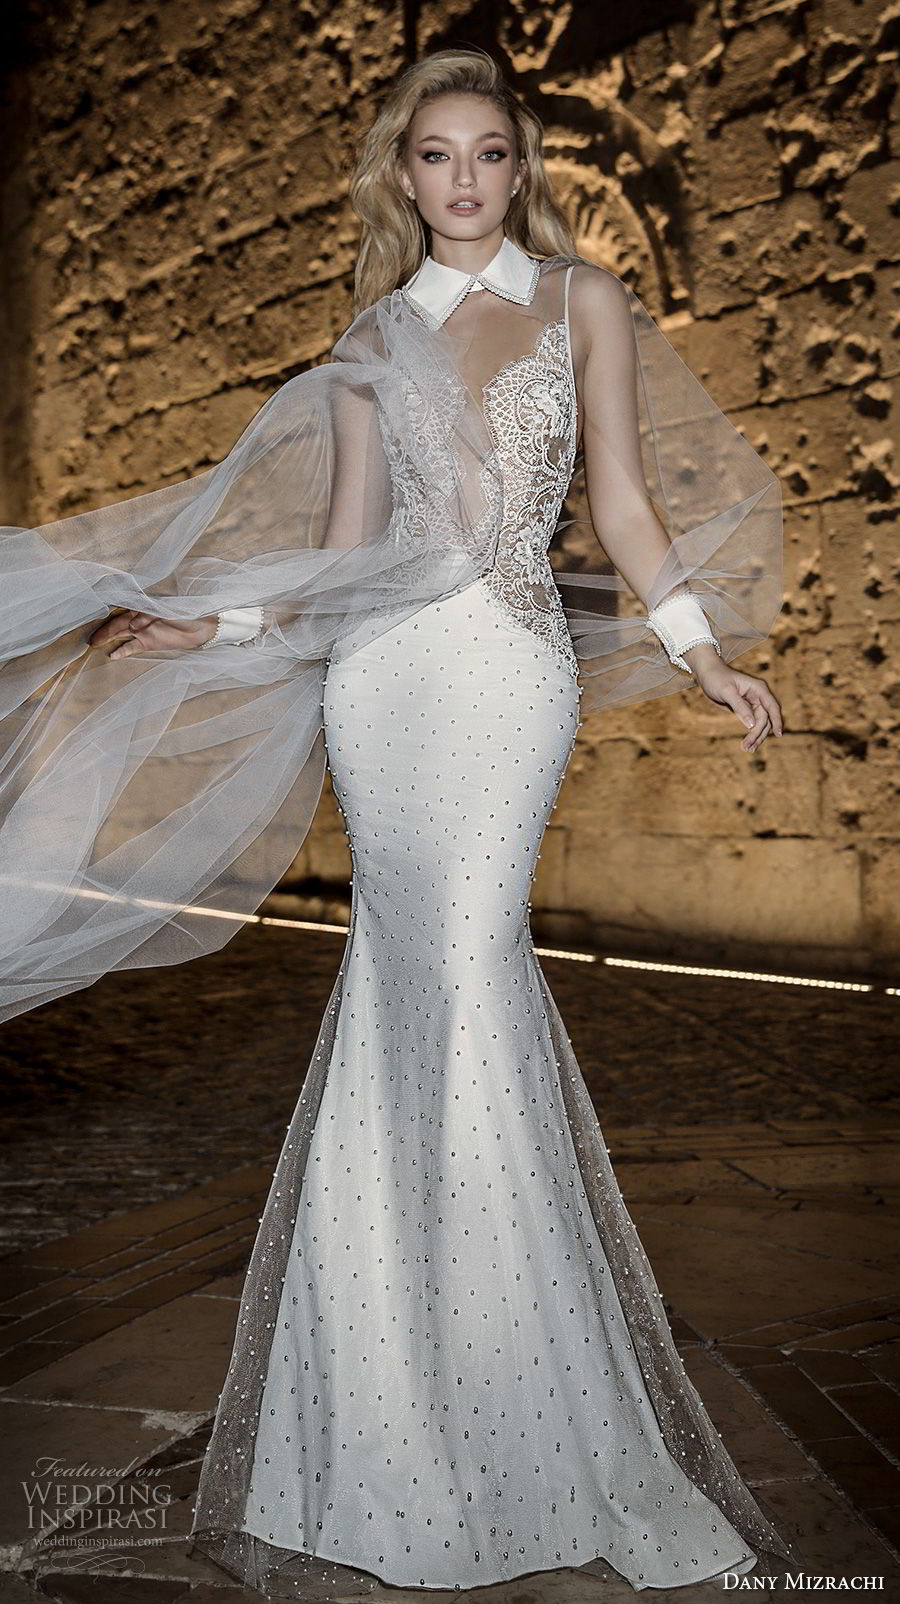 dany mizrachi spring 2018 bridal sleeveless collar neck heavily embellished bodice elegant sophiscated mermaid wedding dress open v back sweep train (34) mv